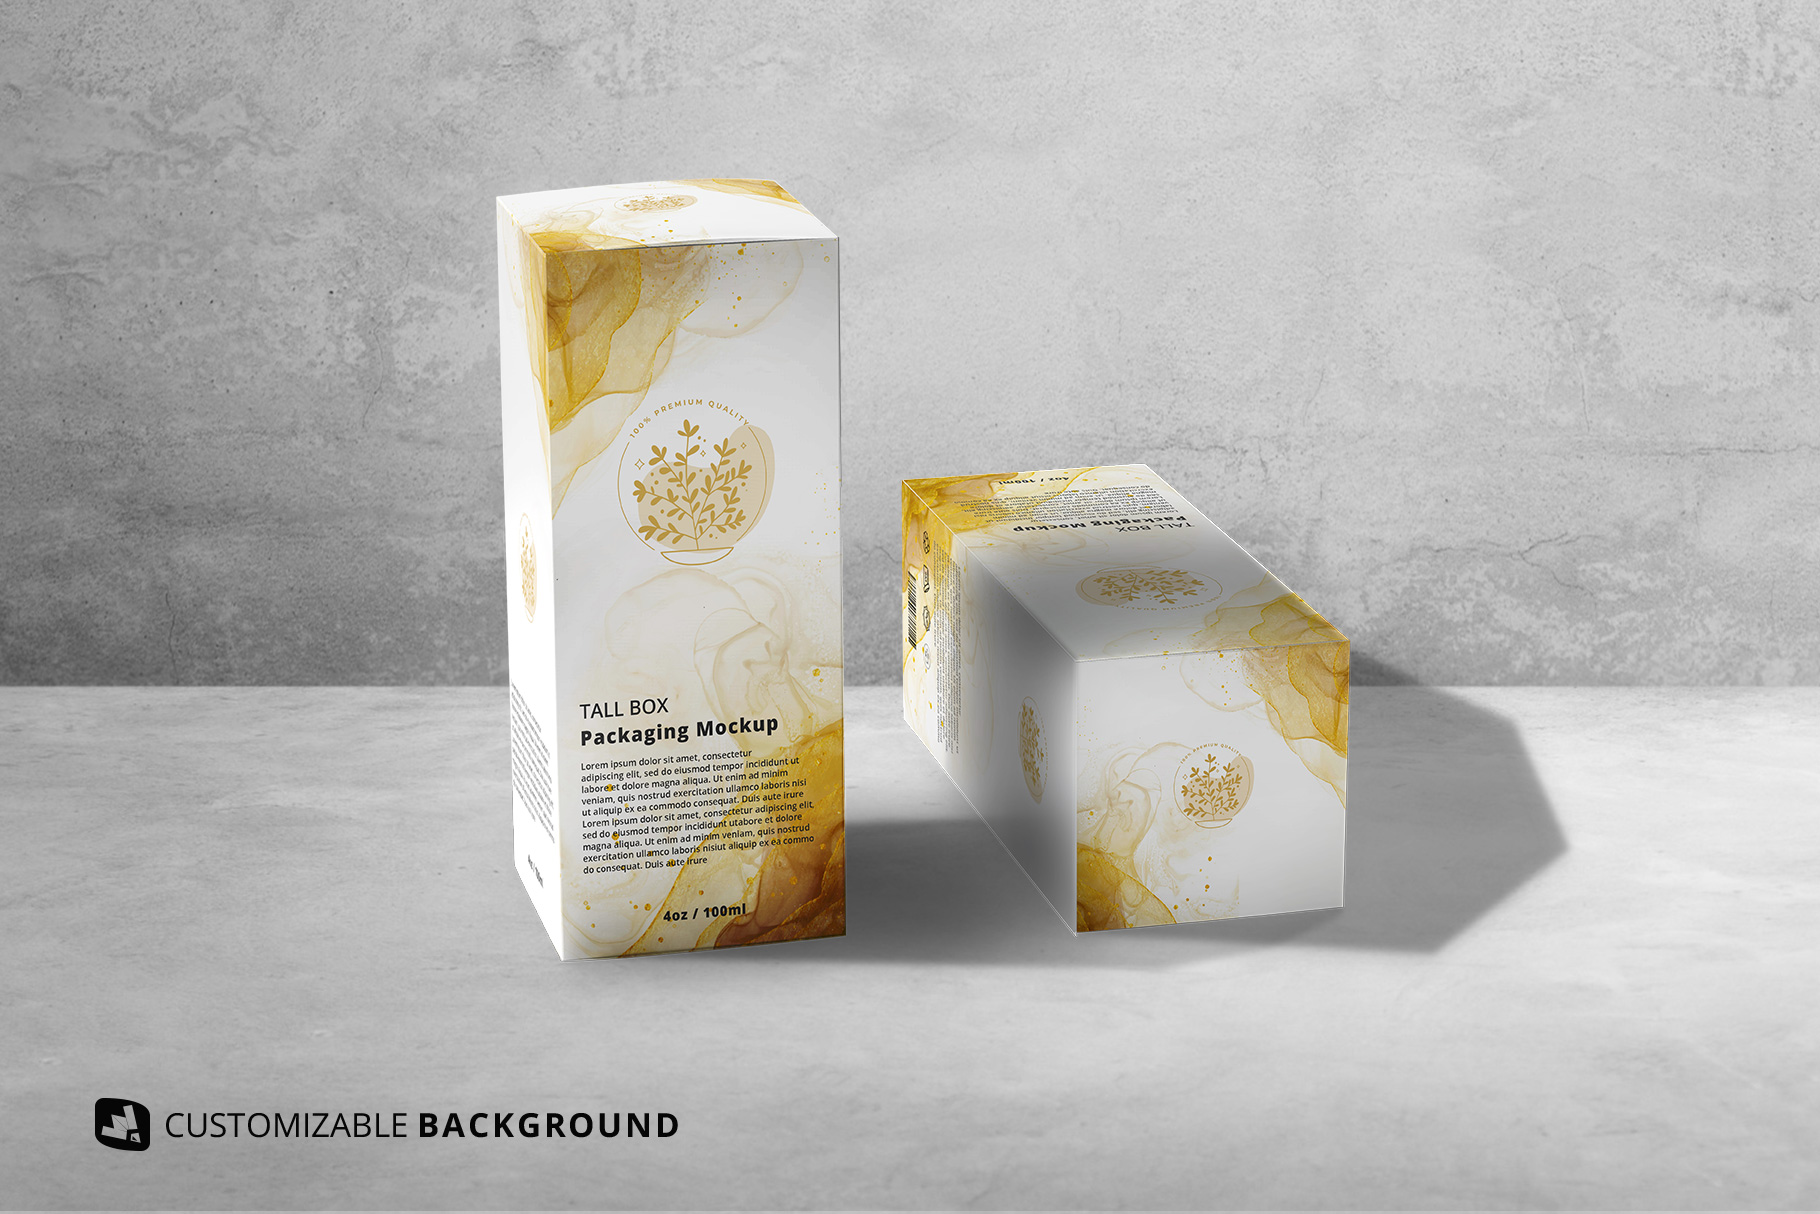 background options of the set of tall box packaging mockup